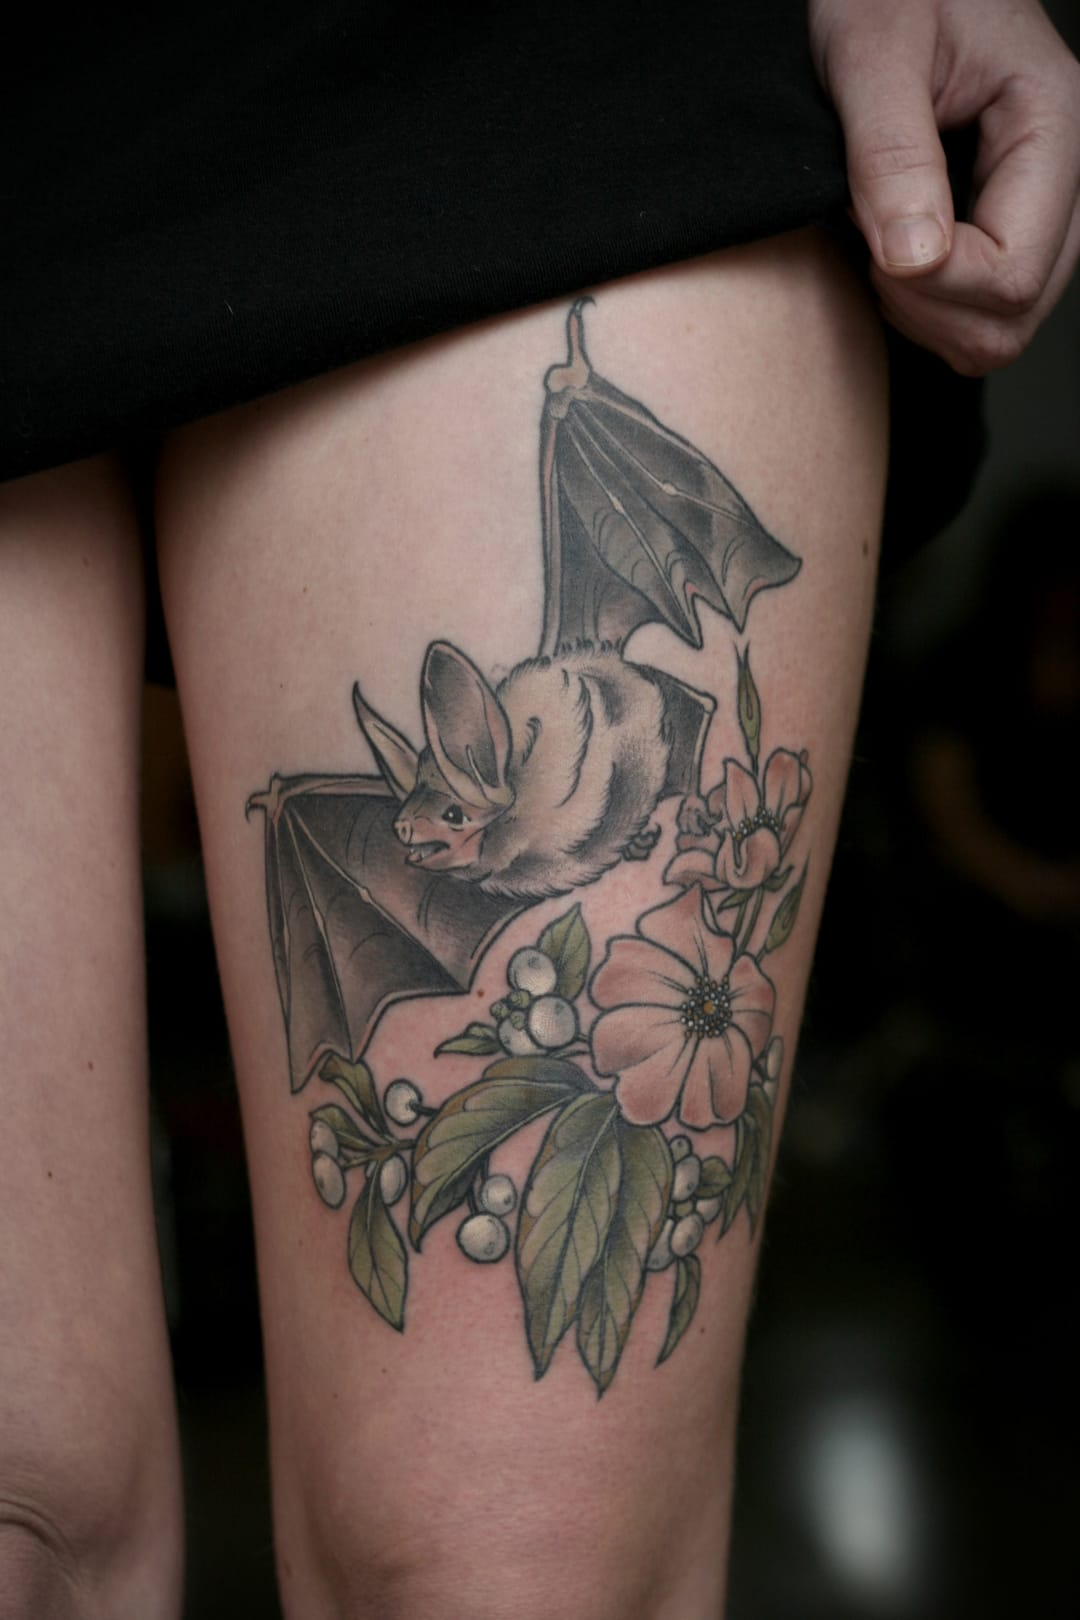 Wonderland tattoo